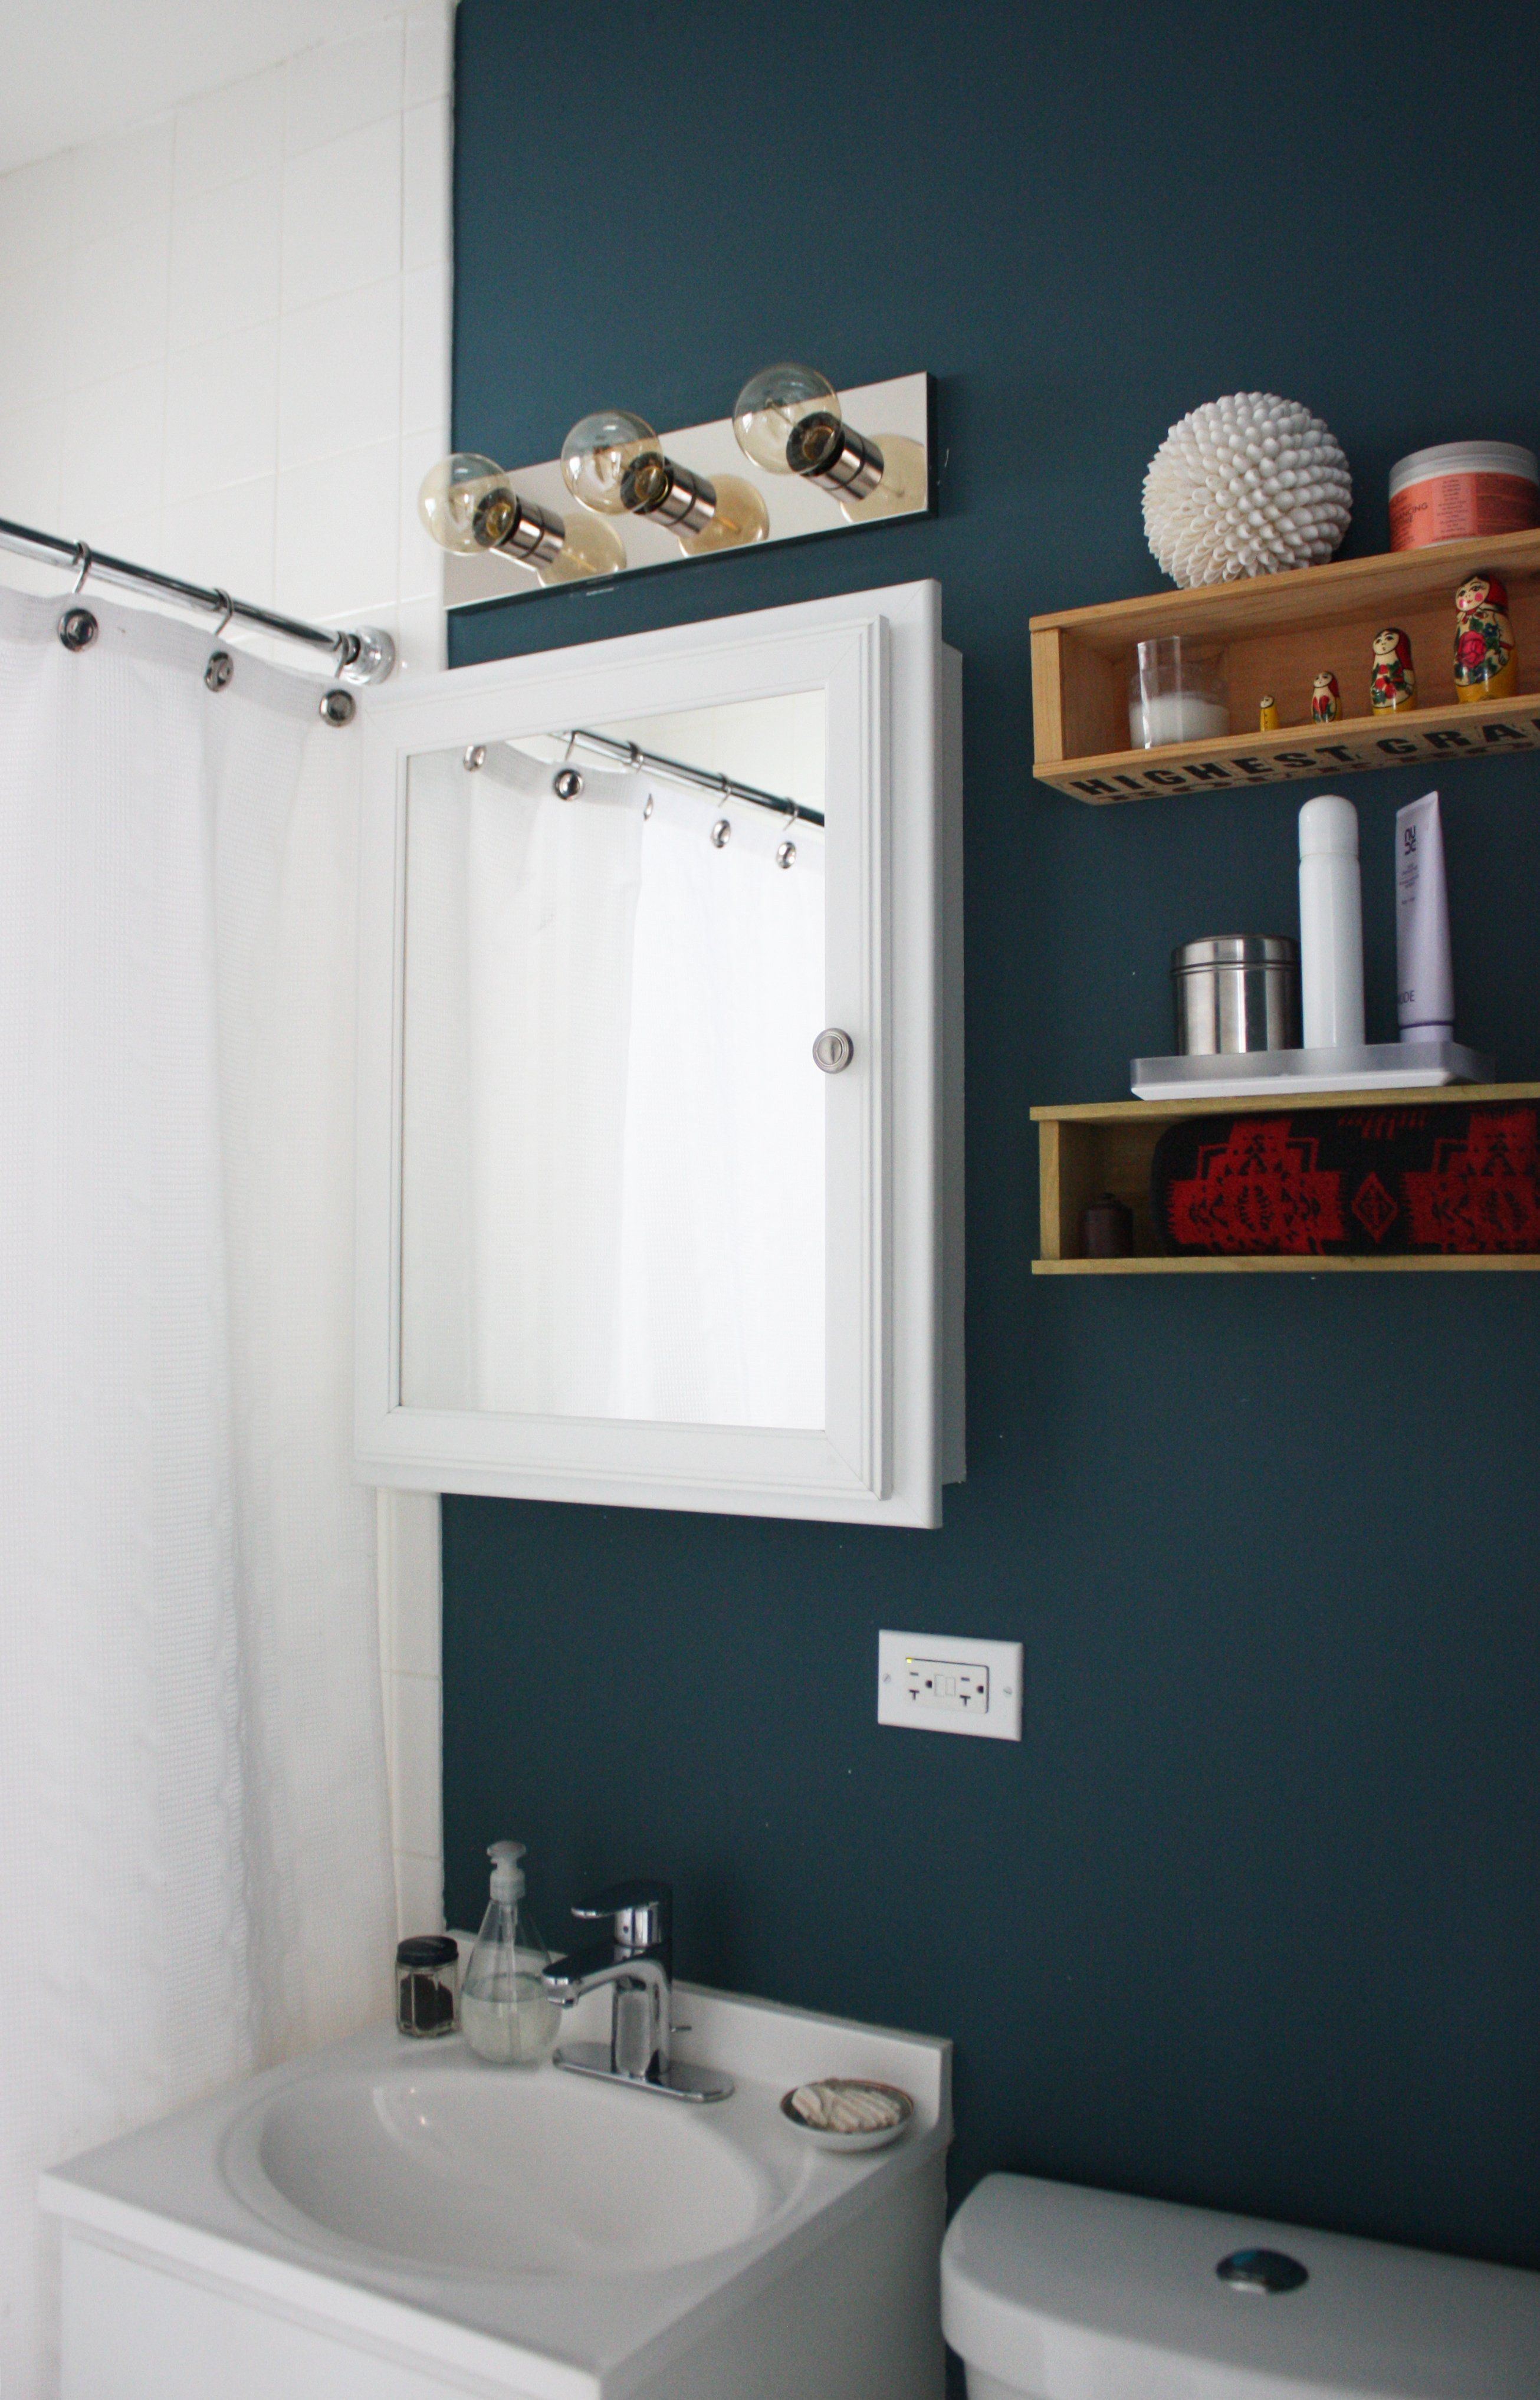 Paint Colors That Match This Apartment Therapy Photo: SW 7075 Web Gray, SW  6097